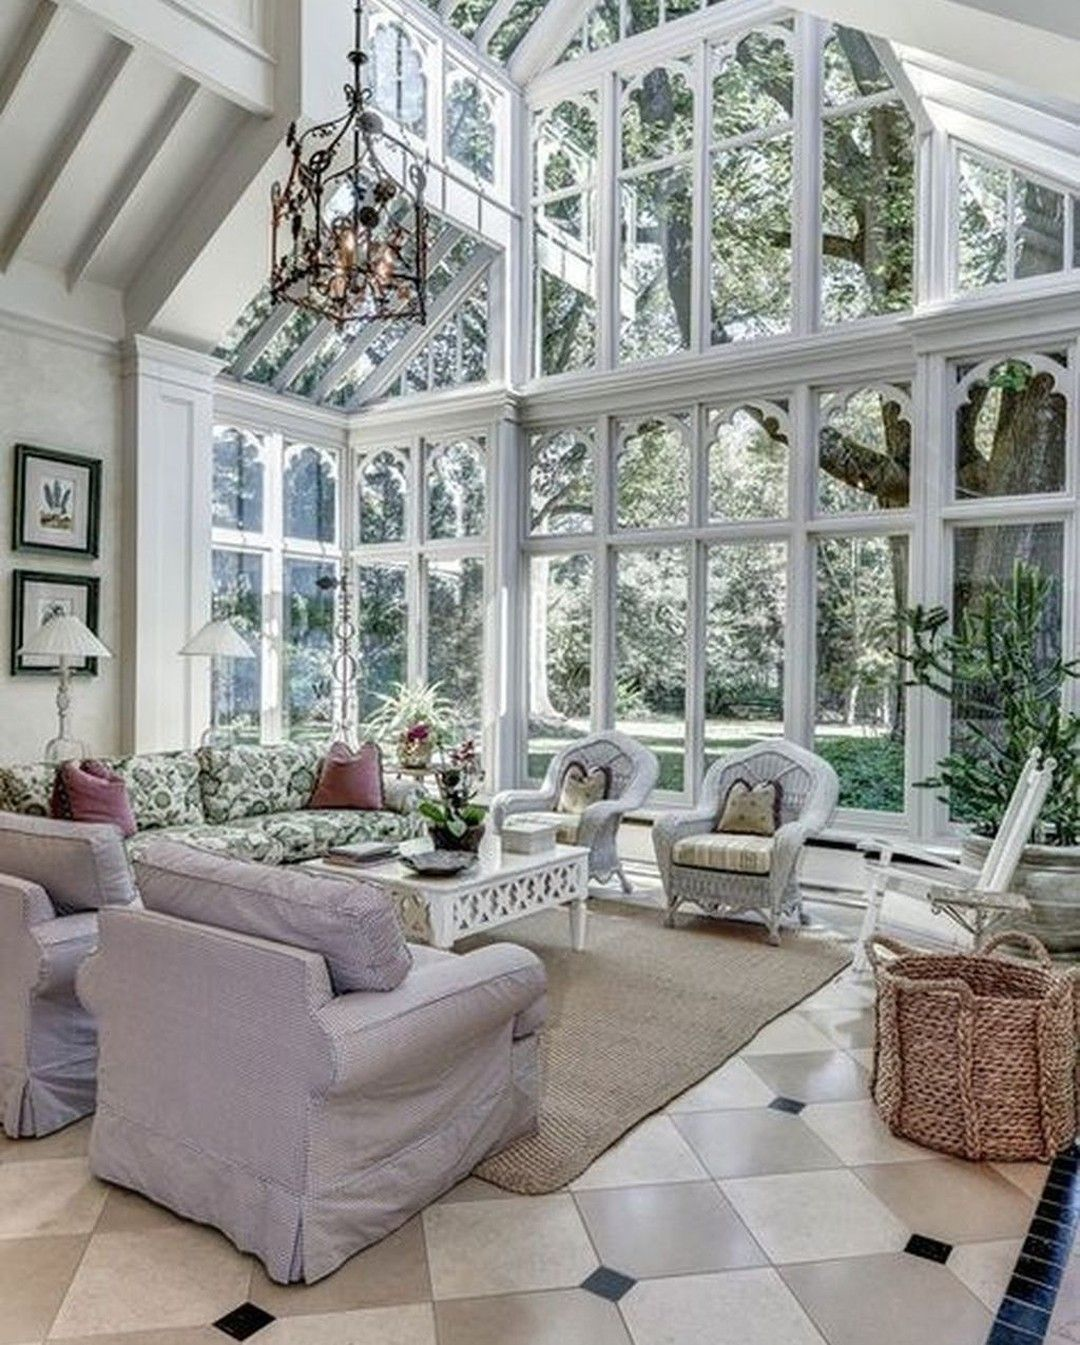 At Silver Service Our Passion Is Reflected In Our Ability To Listen Understand An Contemporary Home Decor Country House Decor Interior Decorating Living Room How much does addition cost